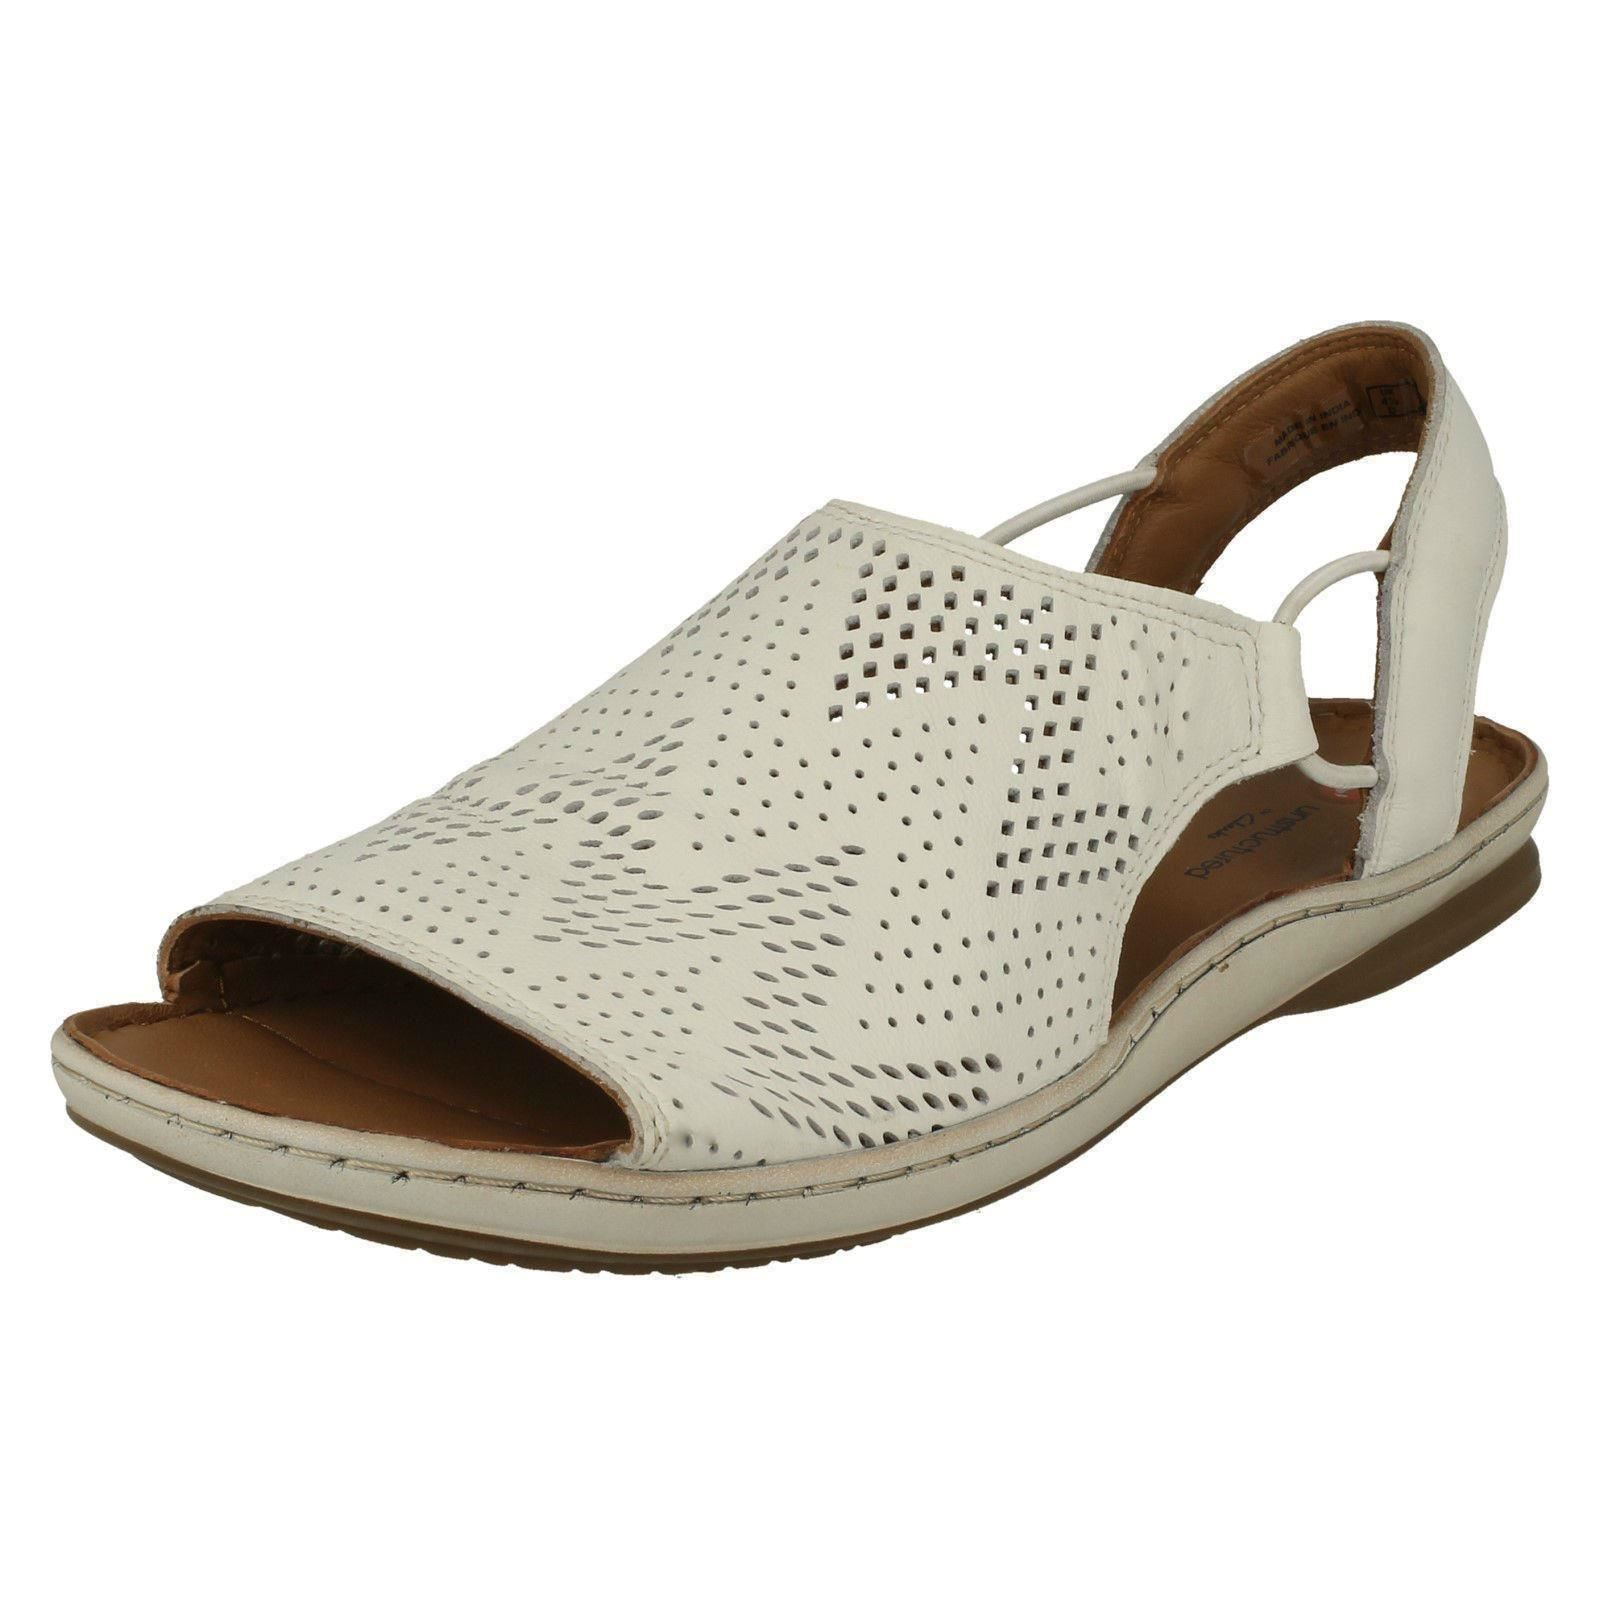 822ea4c0b42 Clarks Sarla Cadence Ladies Leather Sandal White UK 5.5. About this  product. Picture 1 of 9  Picture 2 of 9 ...